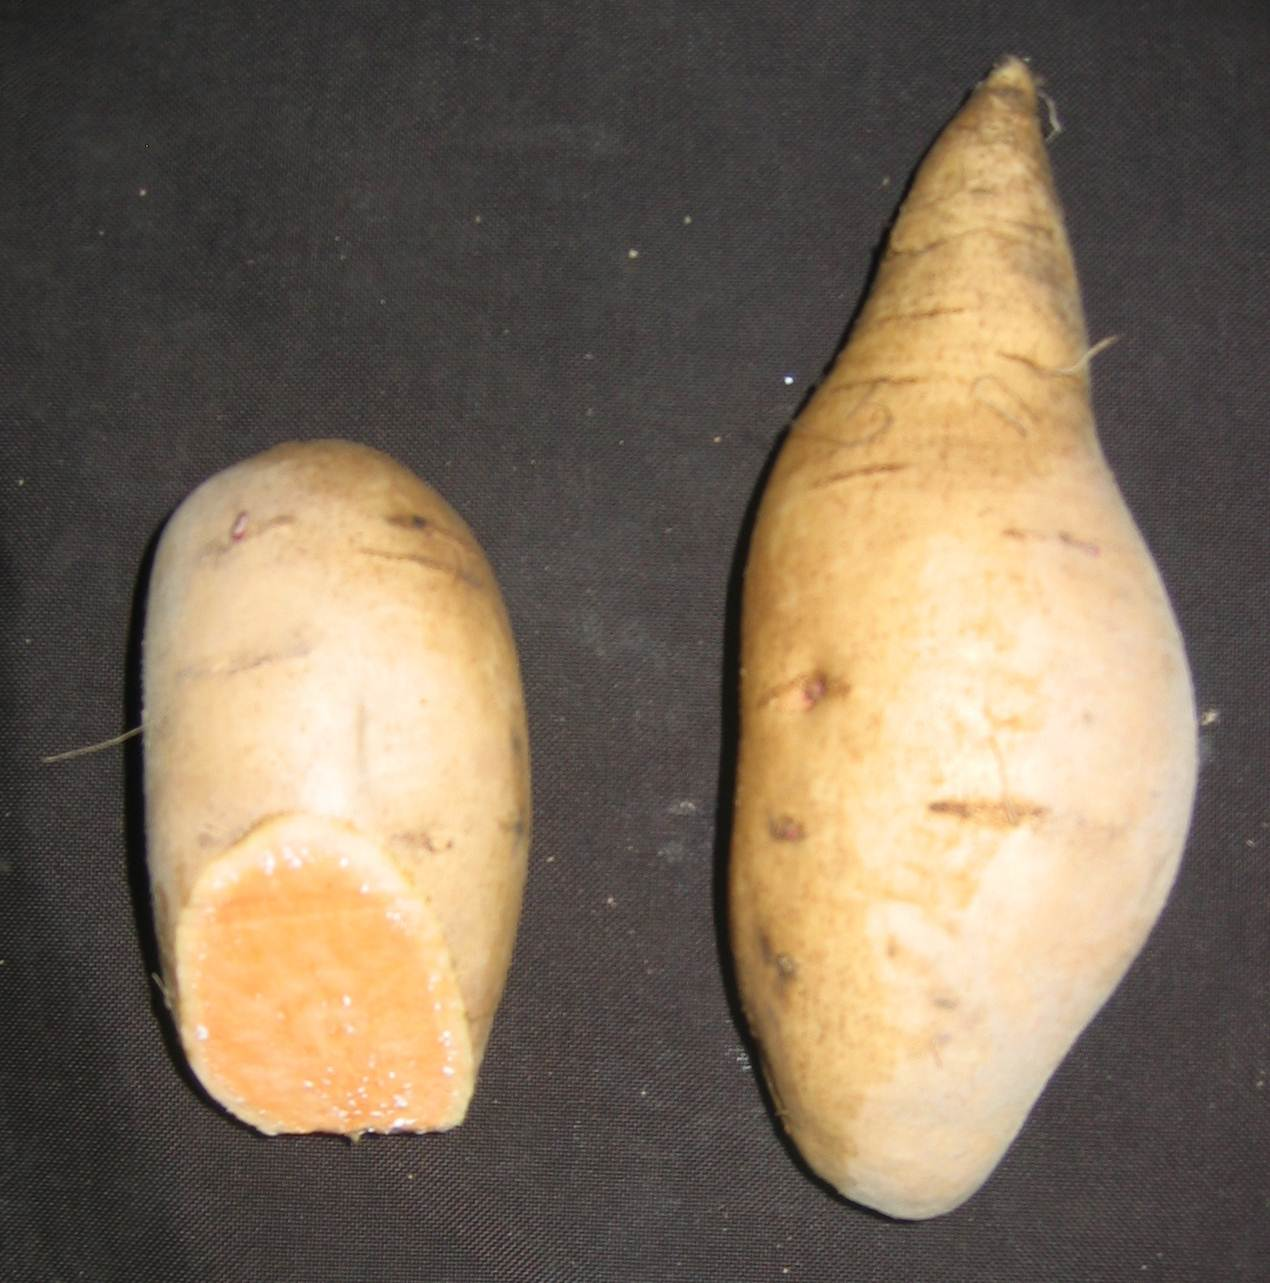 Two sweet potatoes with tan skin. One has end cut revealing deep orange flesh.